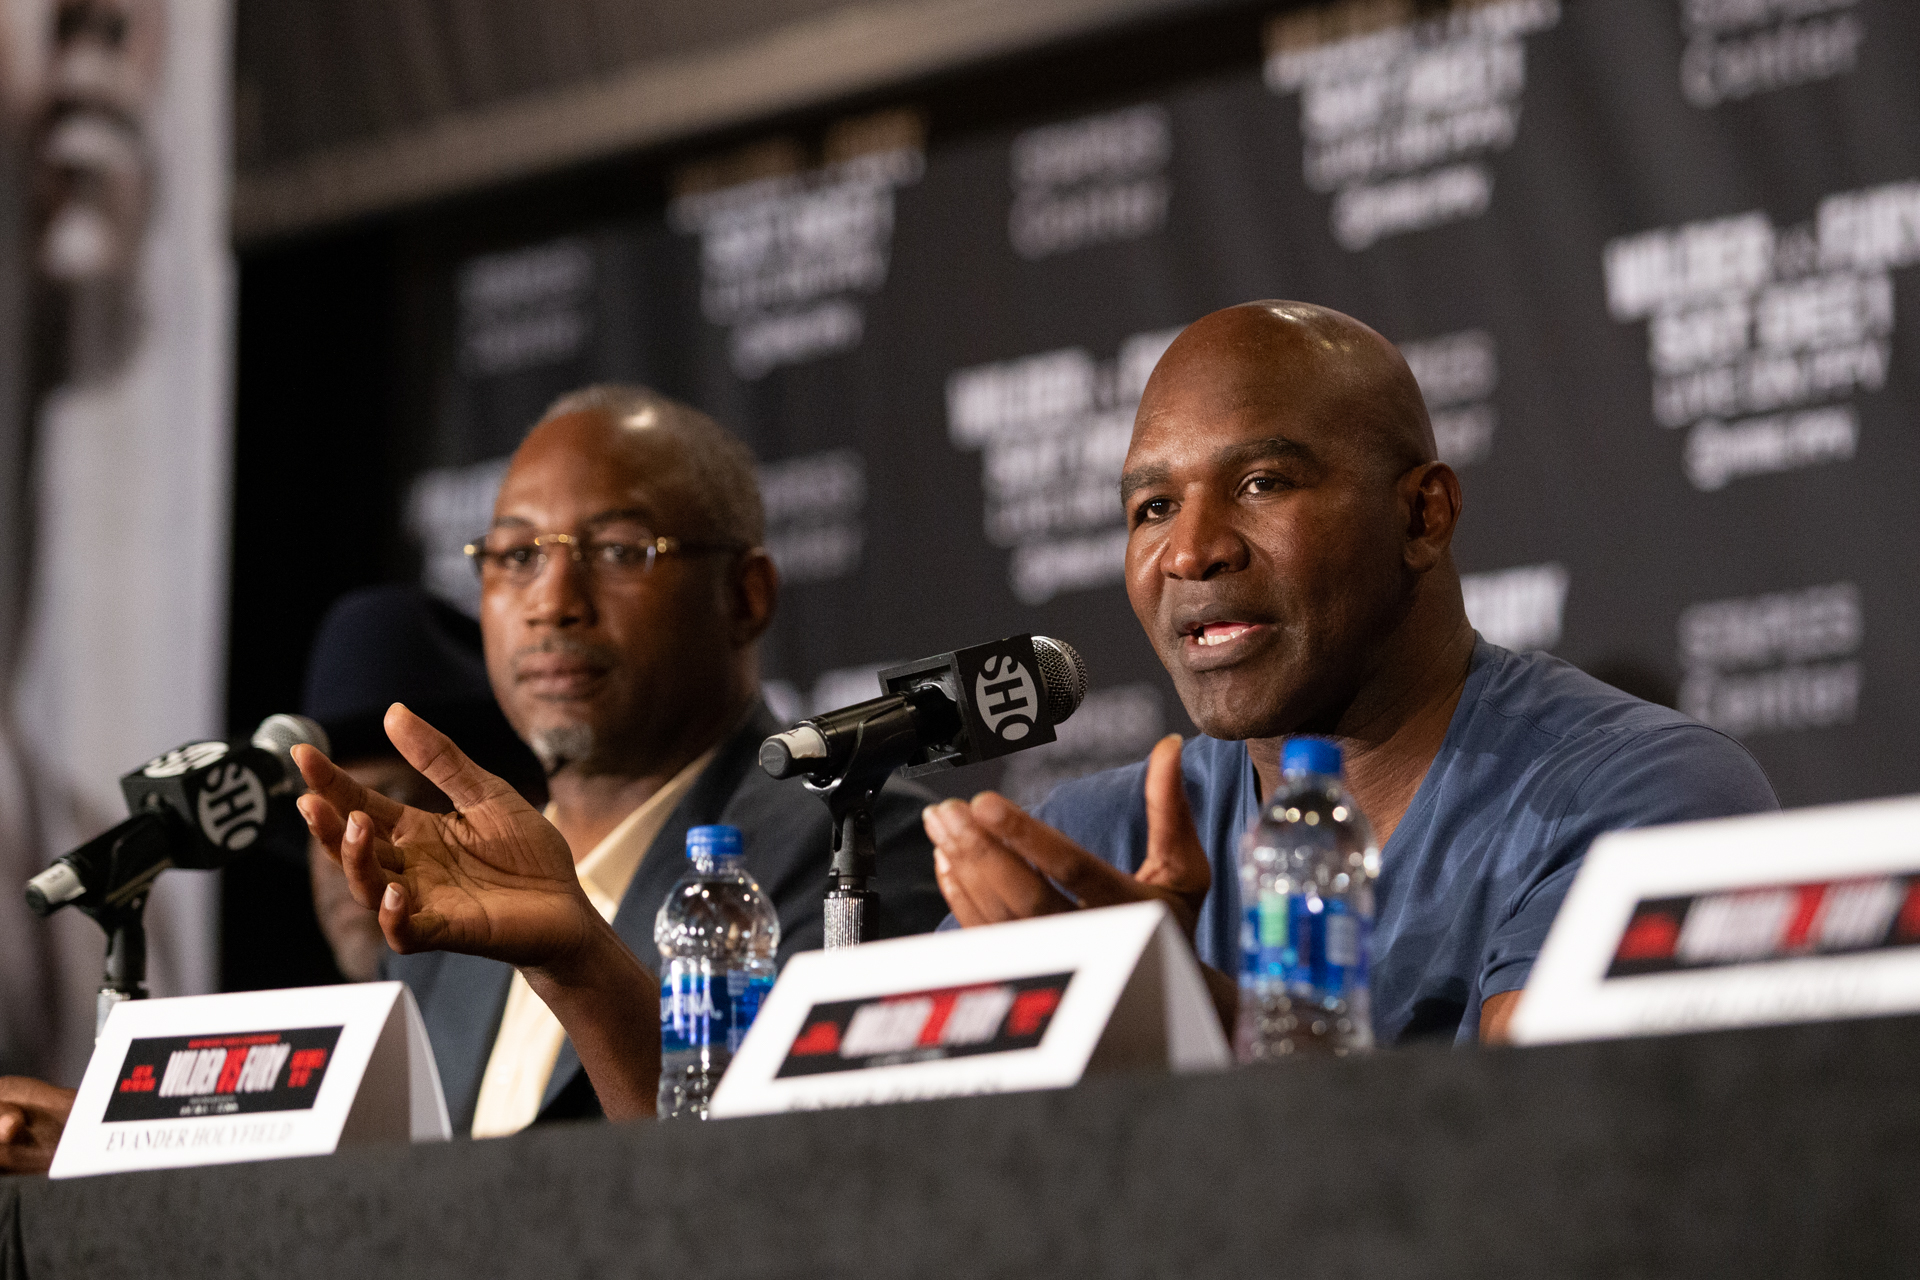 Evander Holyfield Set For Exhibition Against Kevin McBride As Co-Main Event To Teofimo Lopez vs George Kambosos Jr. On June 5th